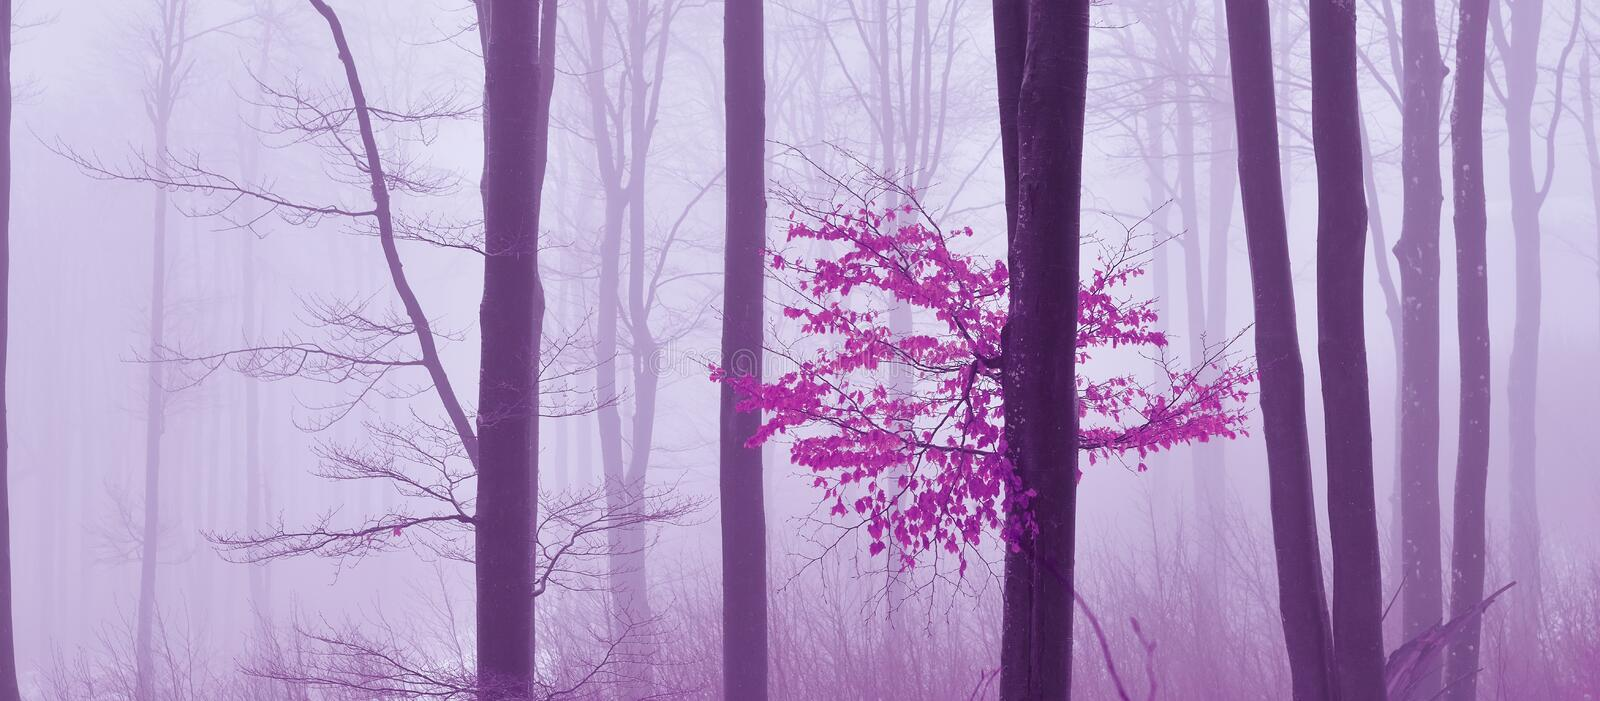 Magical Fog,forest.Colored Background.Magic Artistic Wallpaper.Fairytale.Dream.Tree.Beautiful Nature Landscape Panorama.Colorful. royalty free stock images